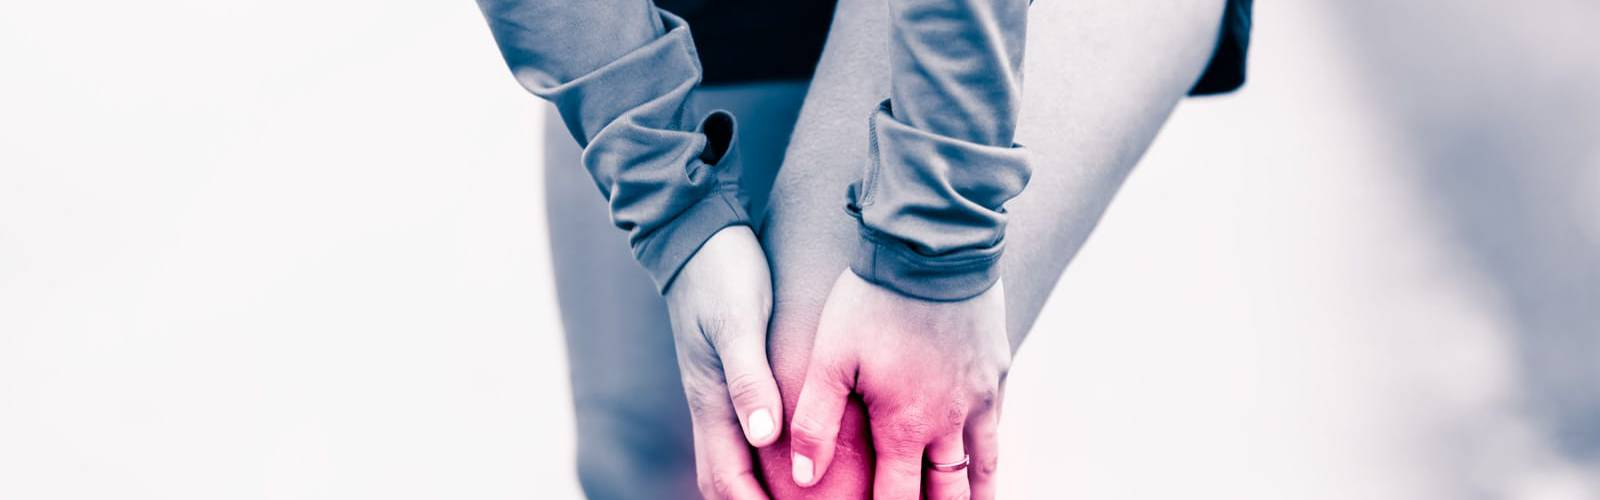 Arthrosis - symptoms, causes and treatments - Health Panel